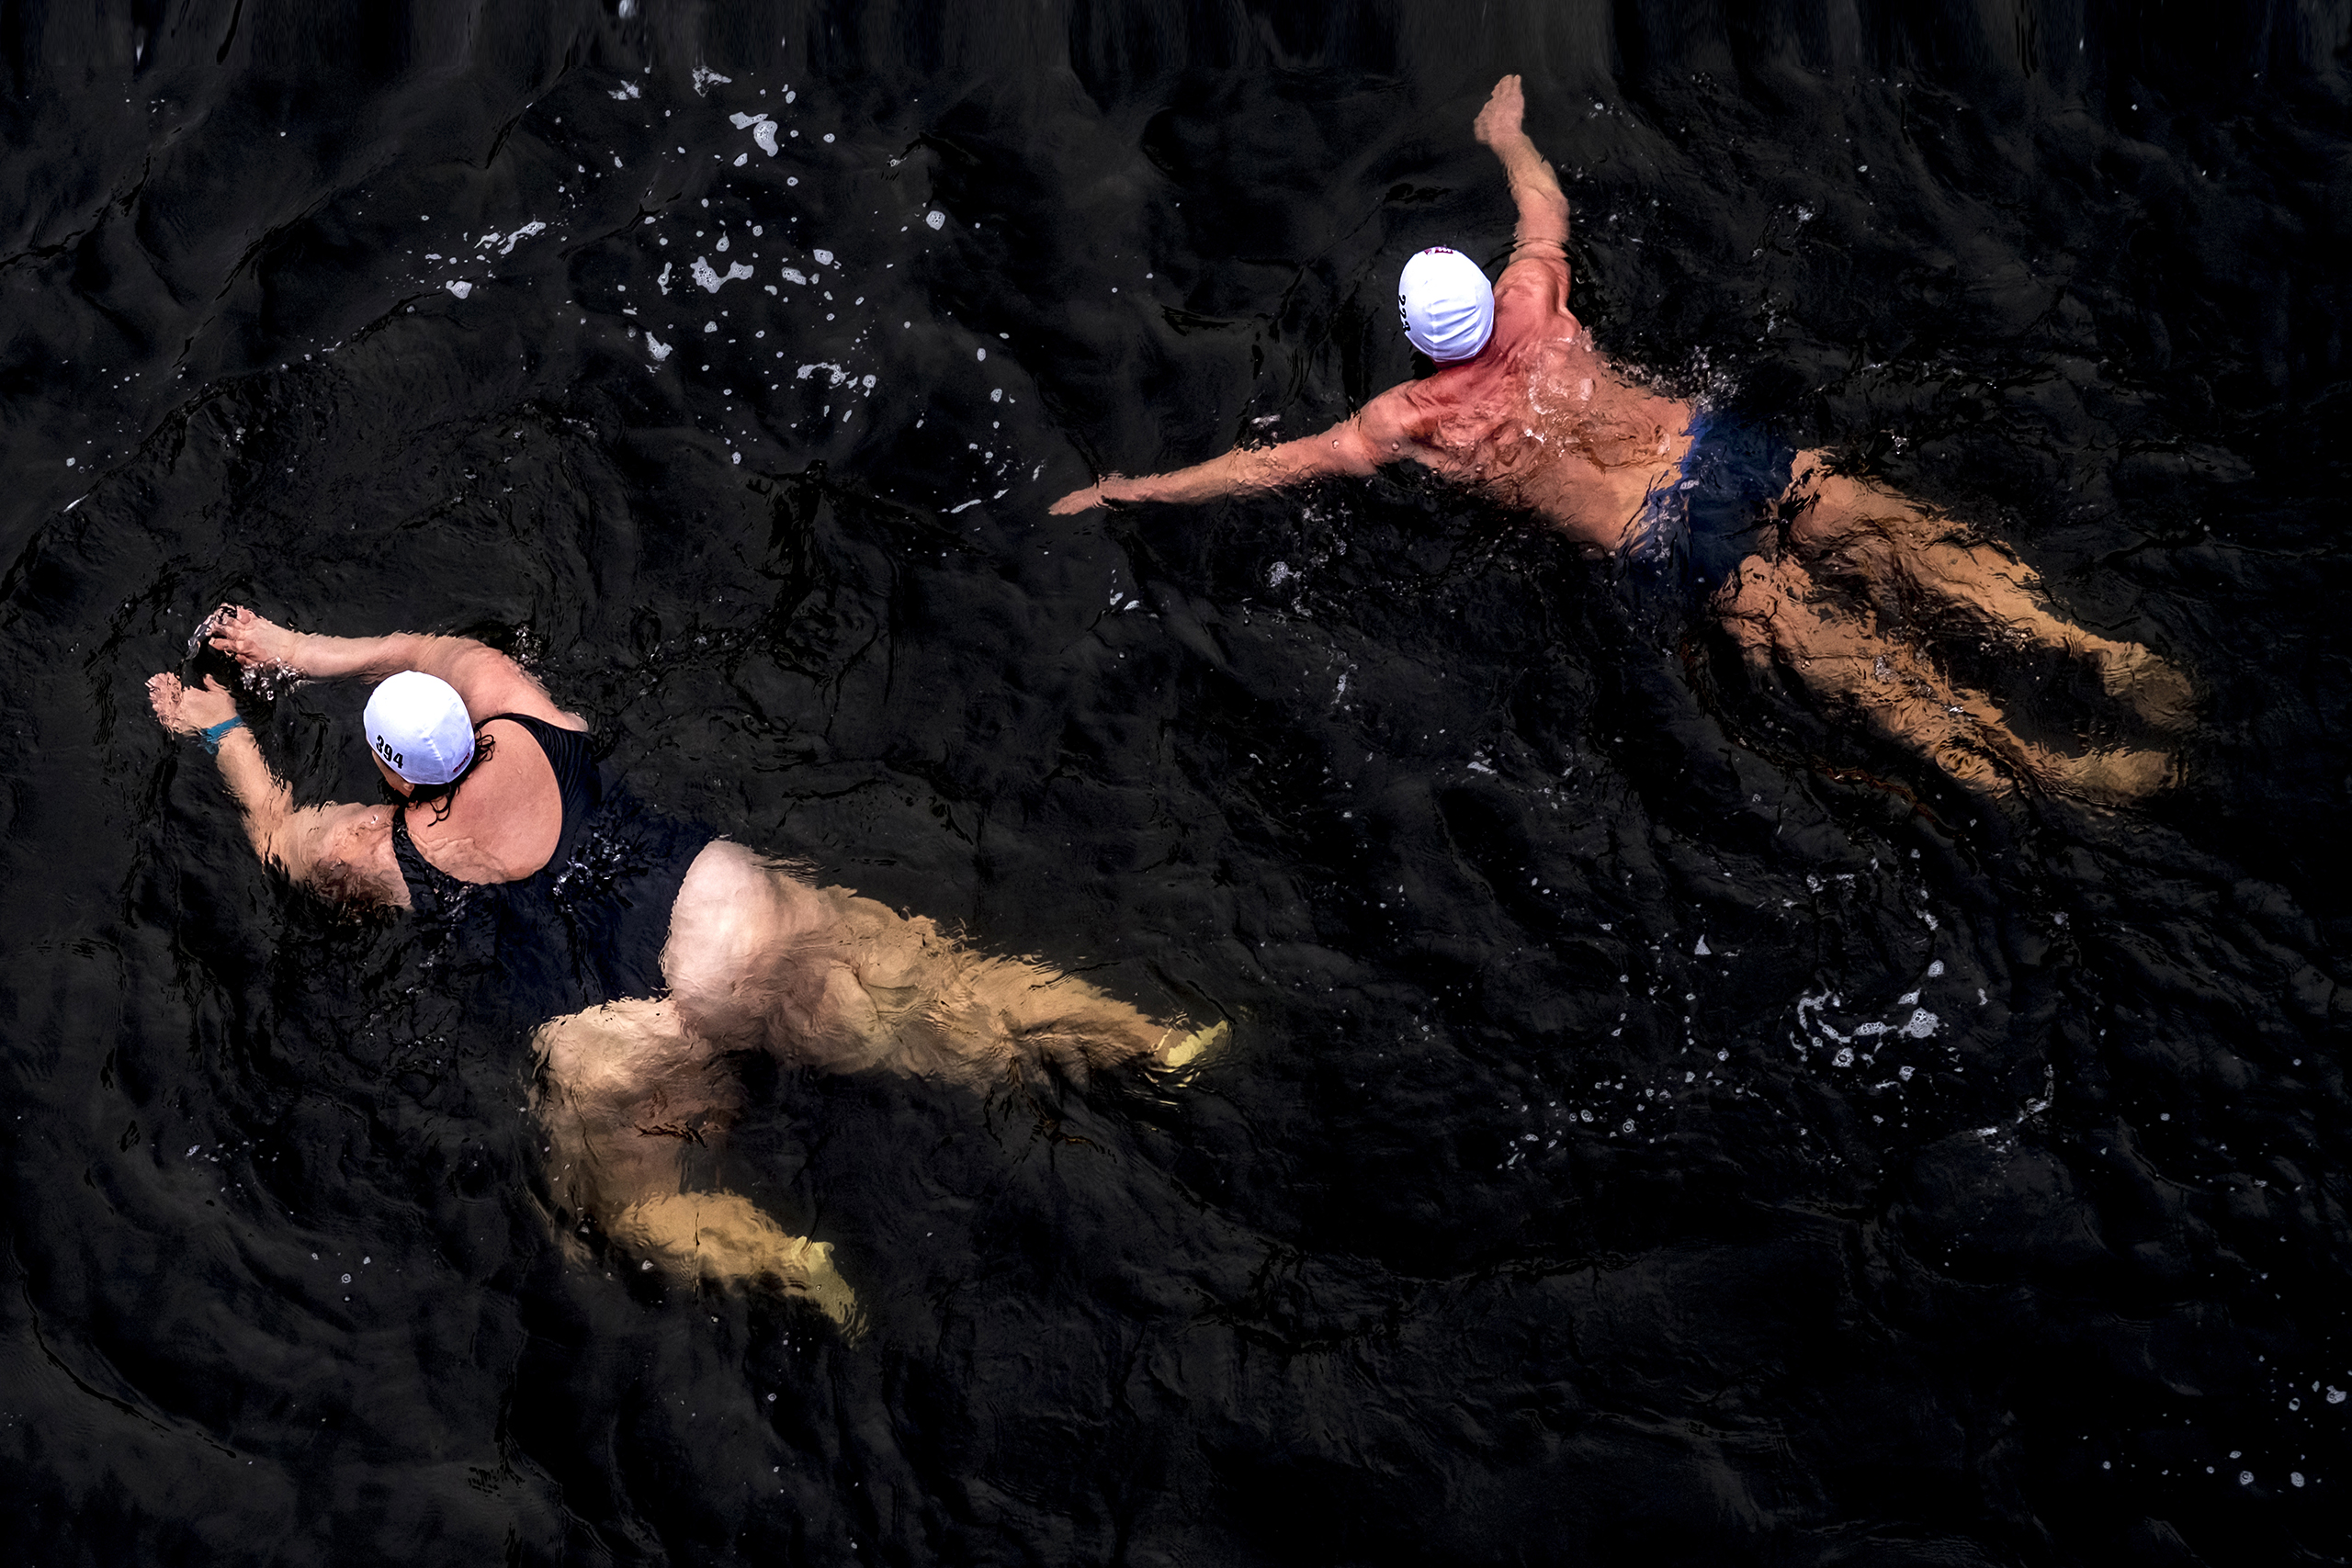 Hundreds of cold water swimmers participate in a Boxing Day swim in the Vltava River in Prague on Dec. 26 2016.